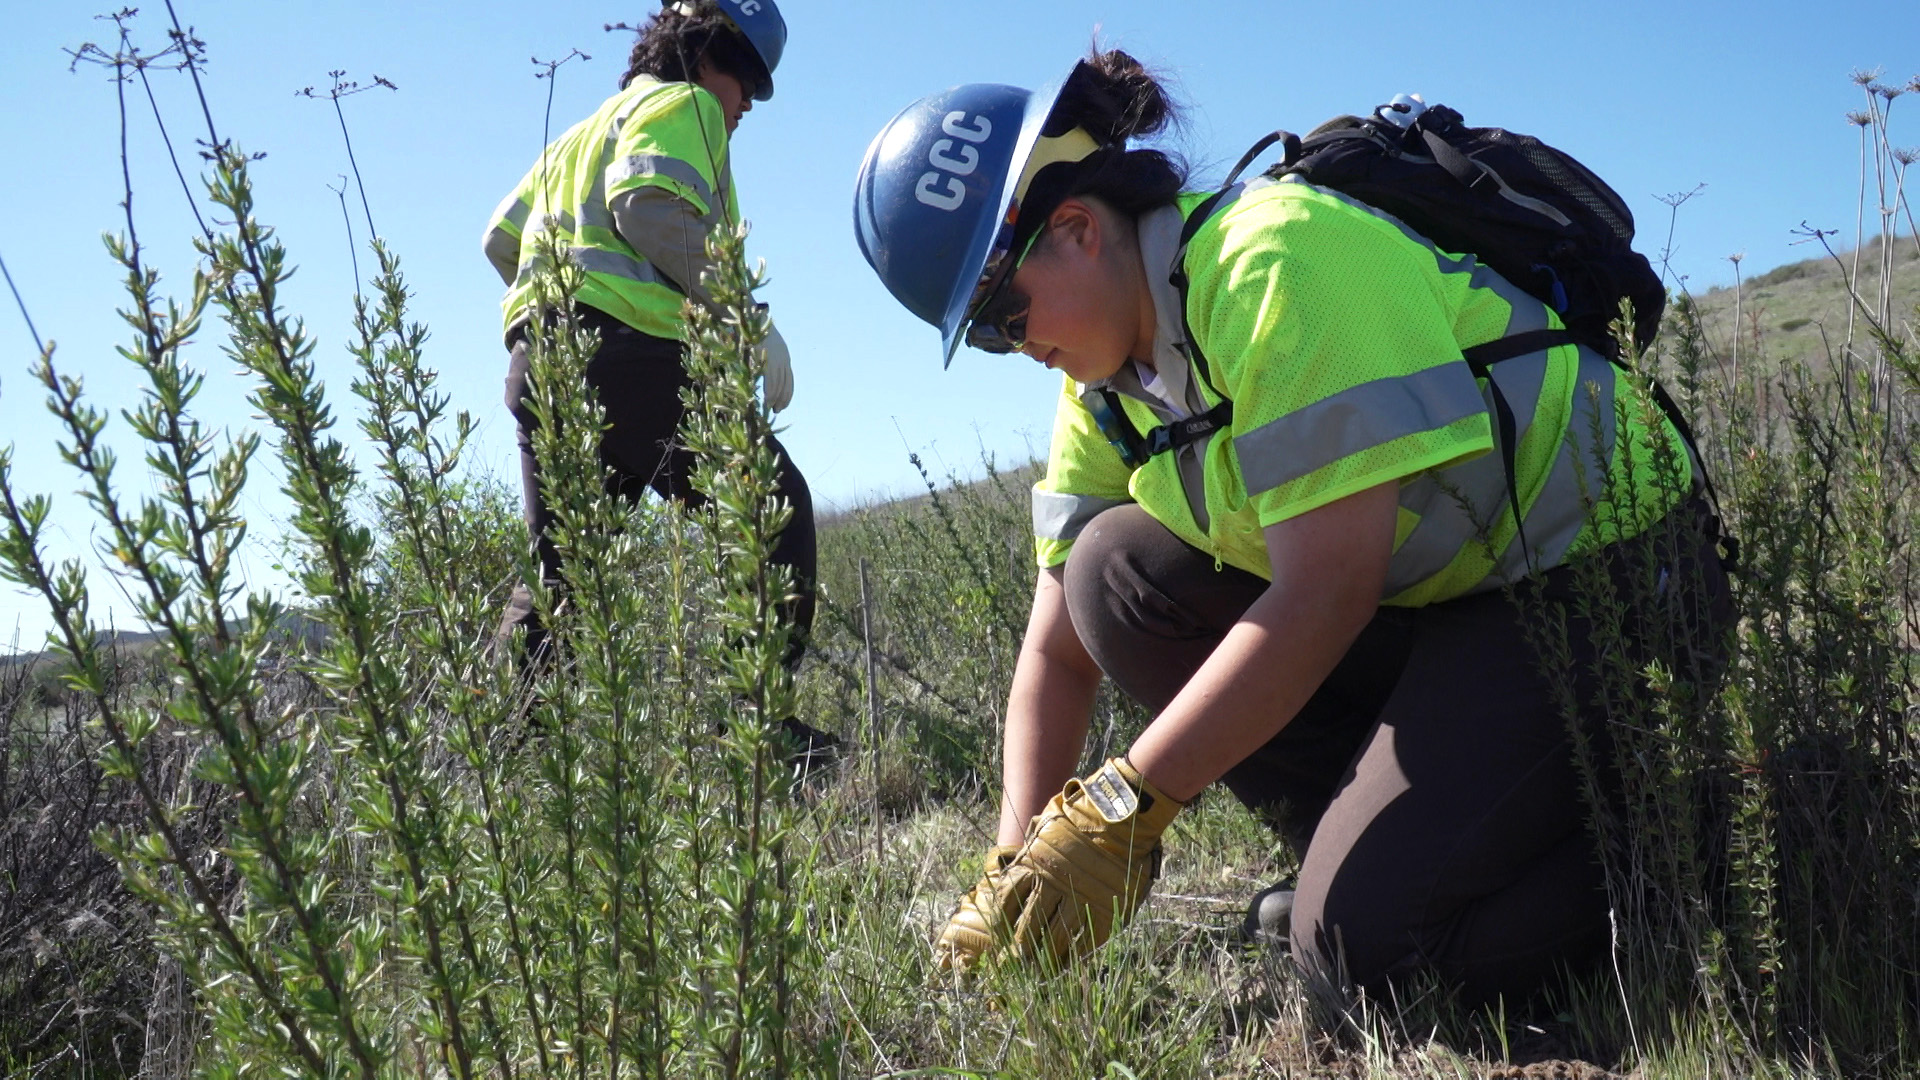 Female Corpsmember plants cactus pad in background, brush appears in photo's foreground.